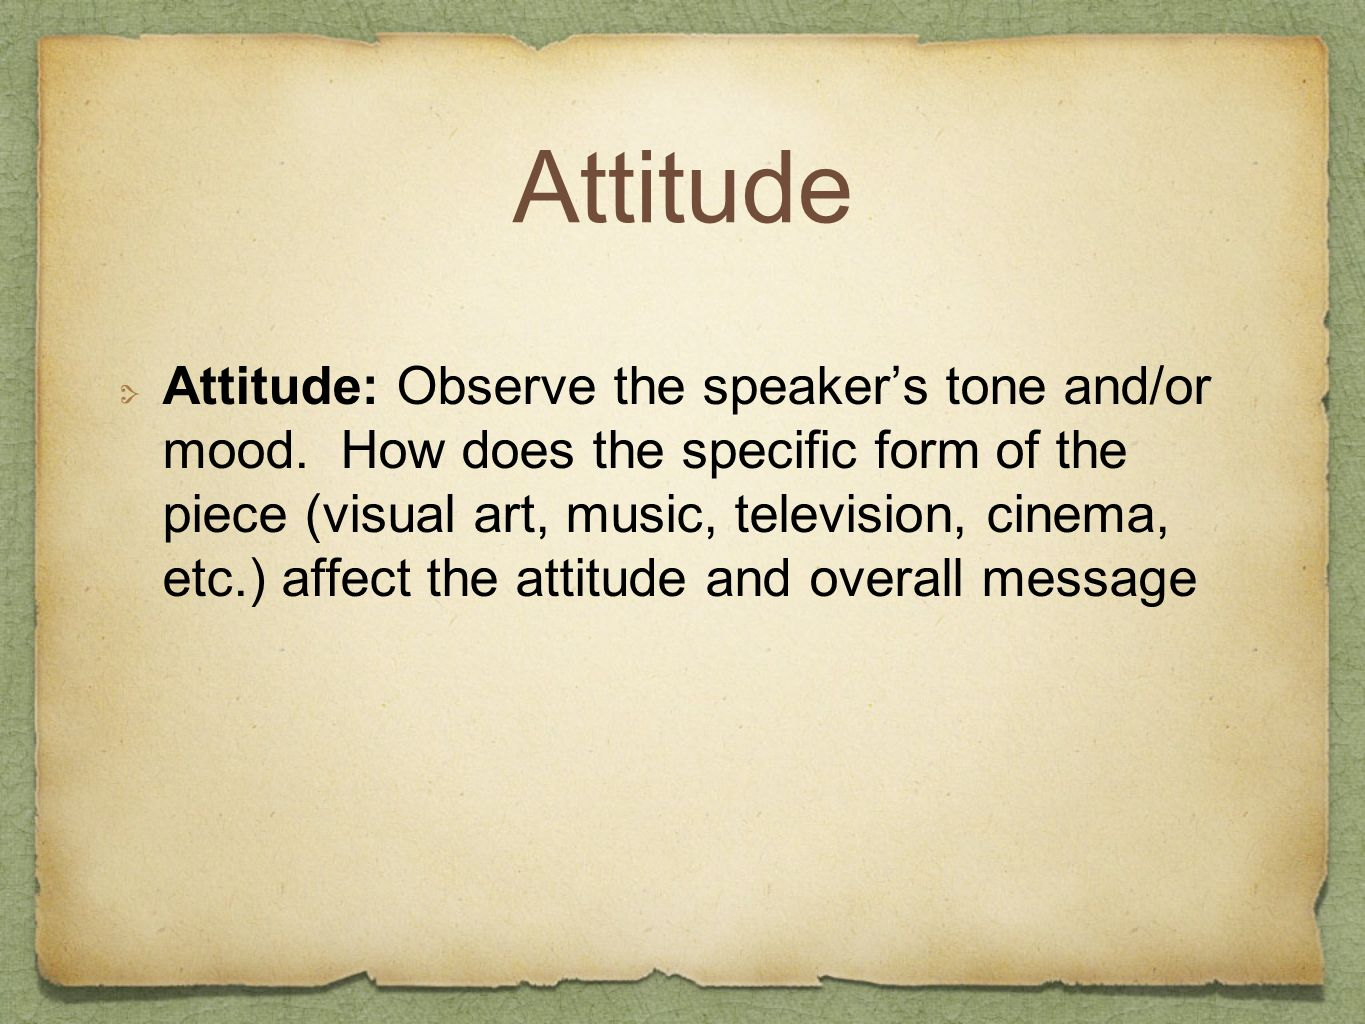 Attitude: Observe the speaker's tone and/or mood